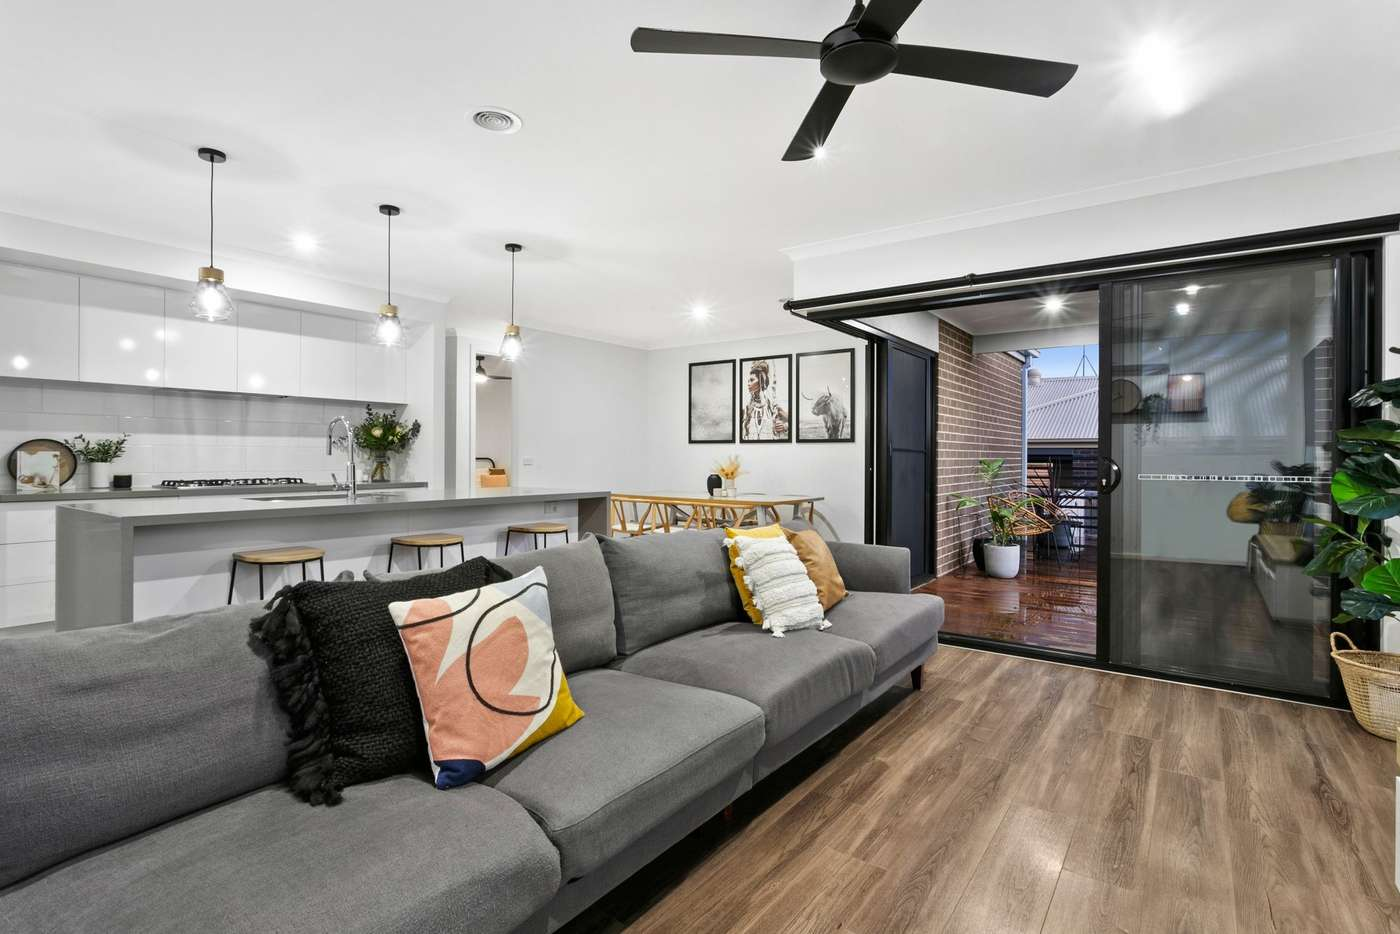 Main view of Homely house listing, 22-24 Stonebridge Road, Drysdale VIC 3222